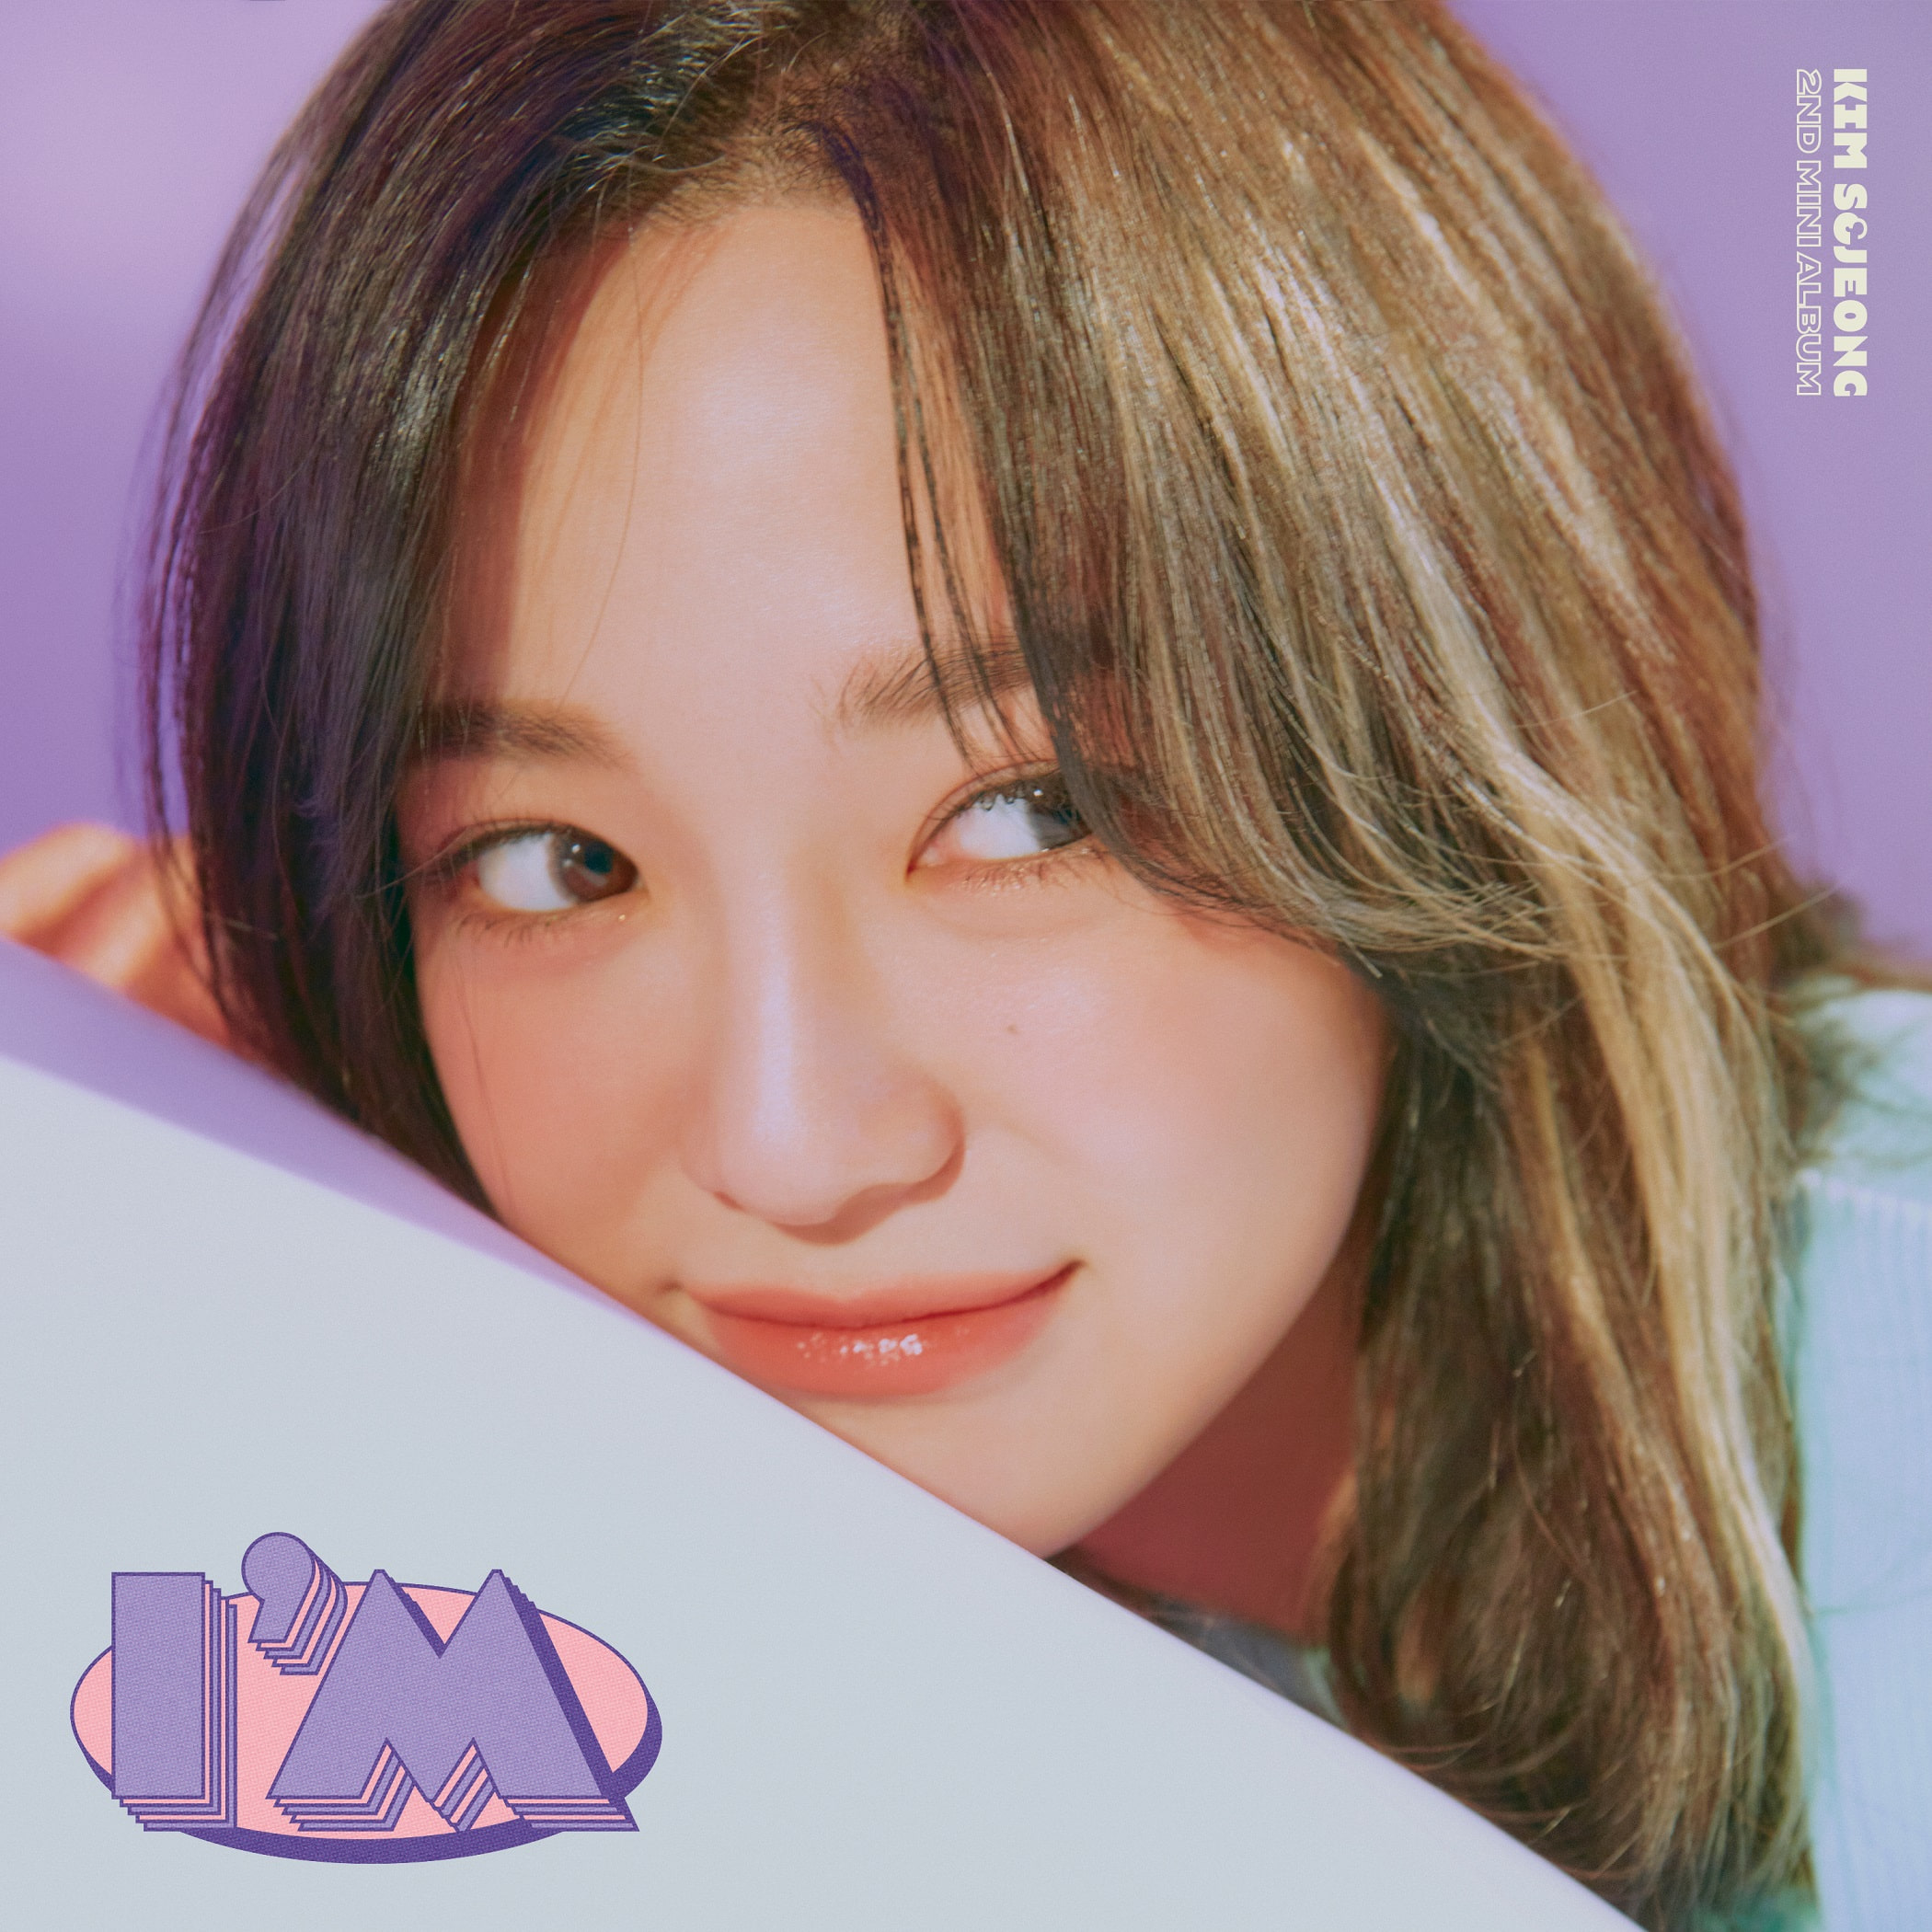 Kim Se Jeong - Mini Album Vol.2 [I'm]케이팝스토어(kpop store)